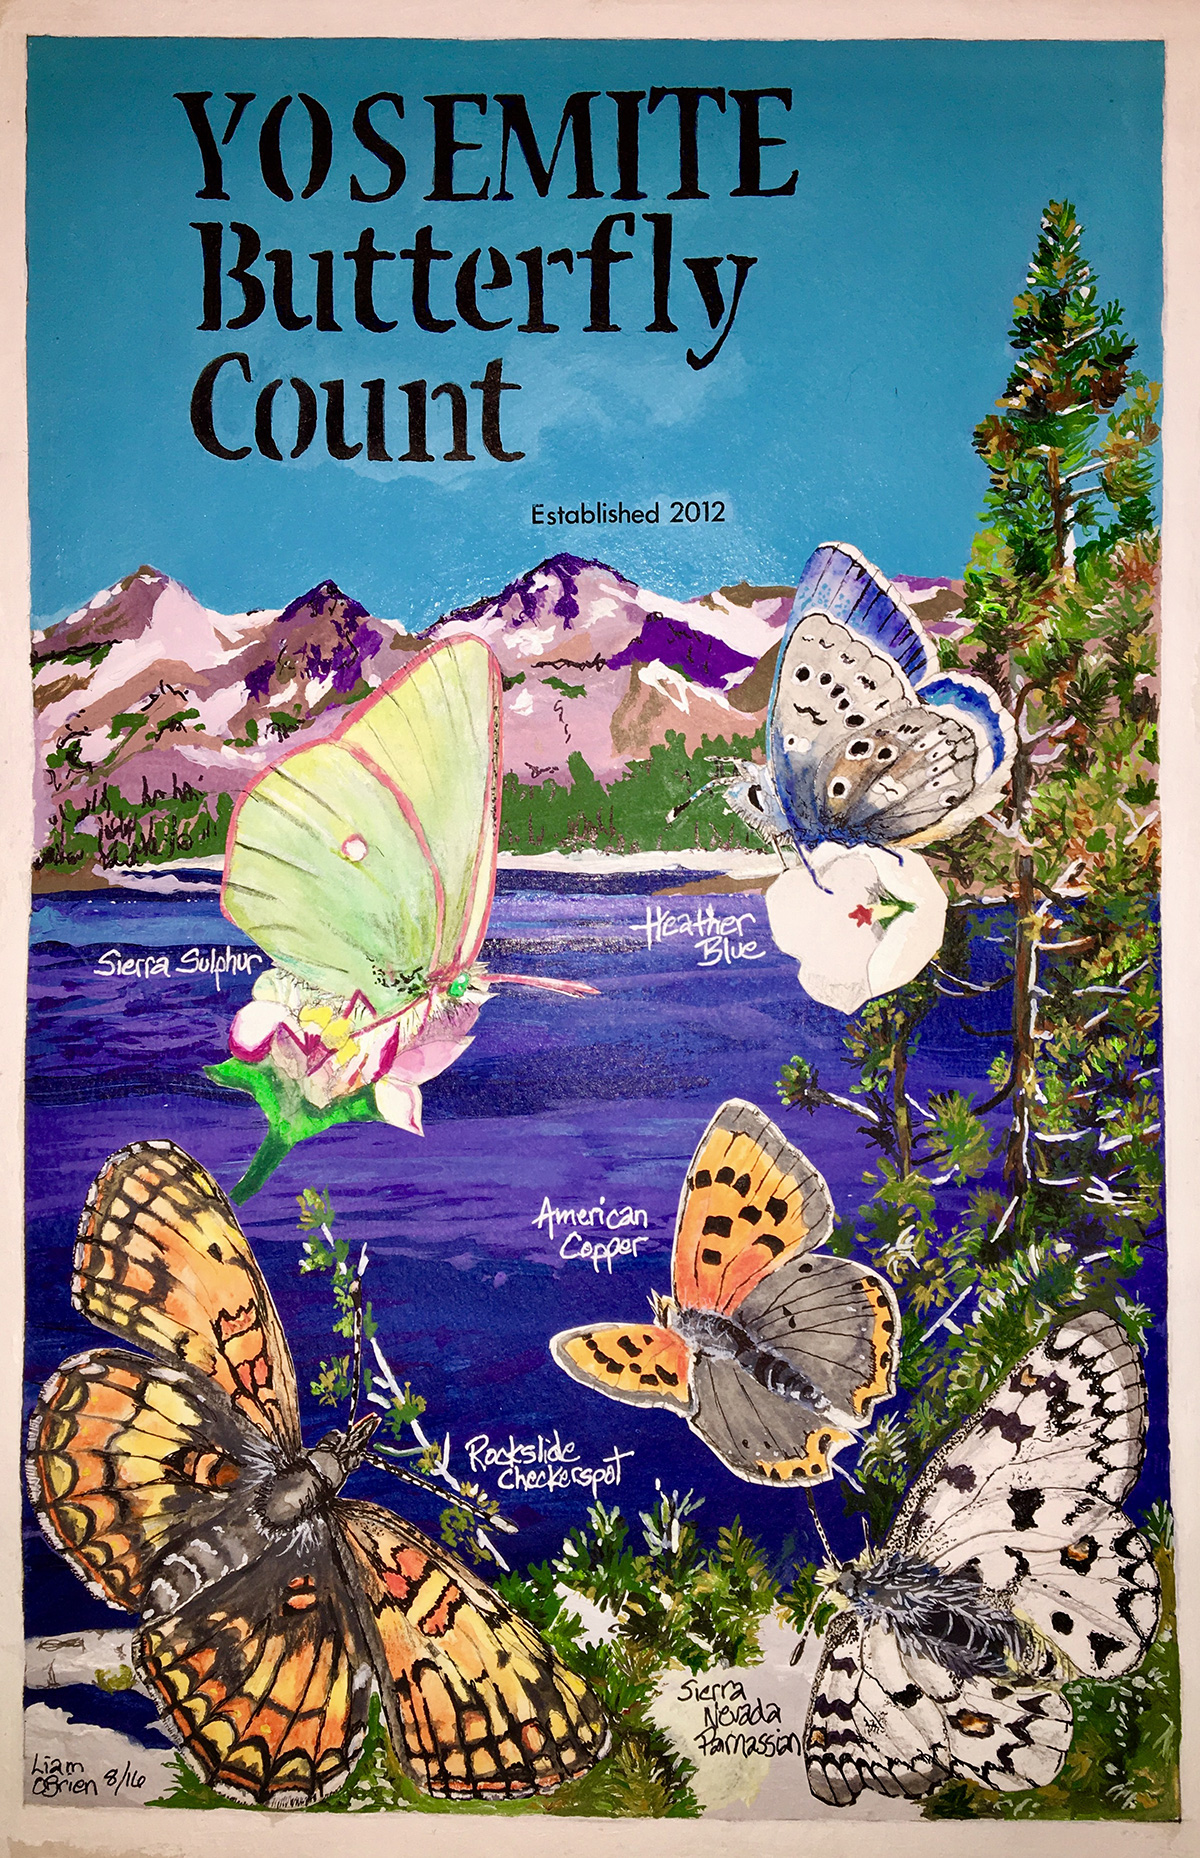 Yosemite butterfly count illustration